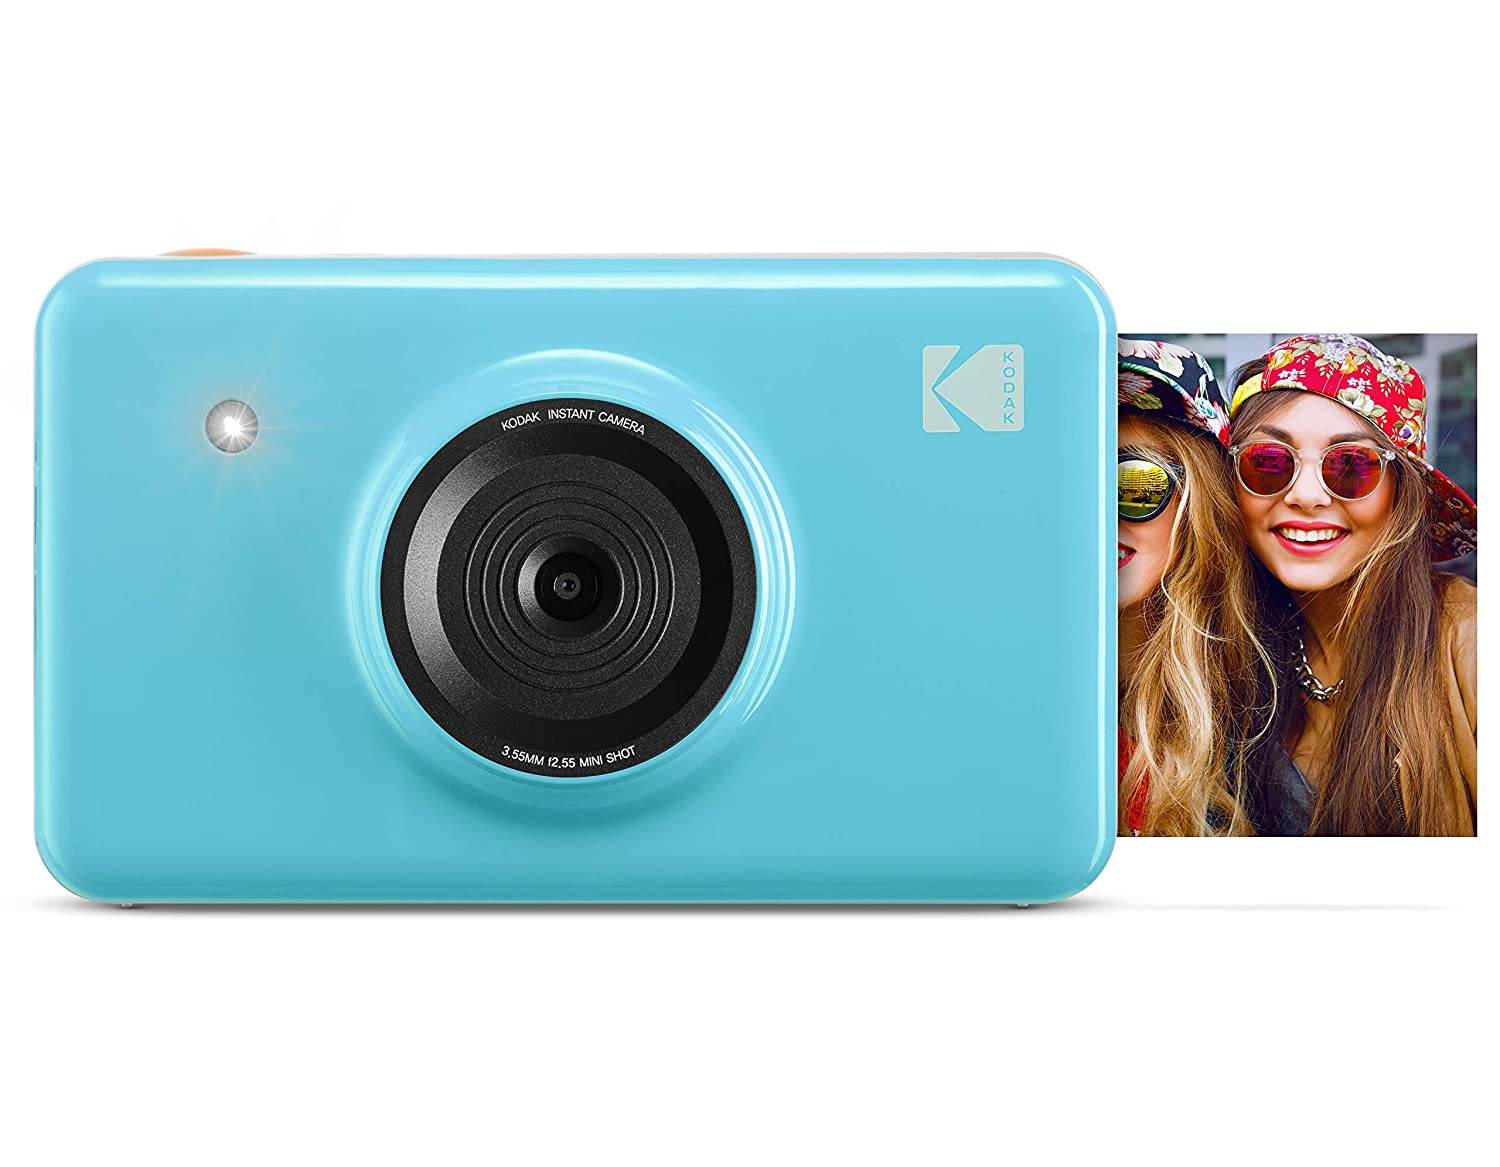 KODAK Mini Shot Wireless Instant Digital Camera & Social Media Portable Photo Printer, LCD Display, Premium Quality Full Color Prints, Compatible w/iOS & Android (Blue) KOD-MSBL